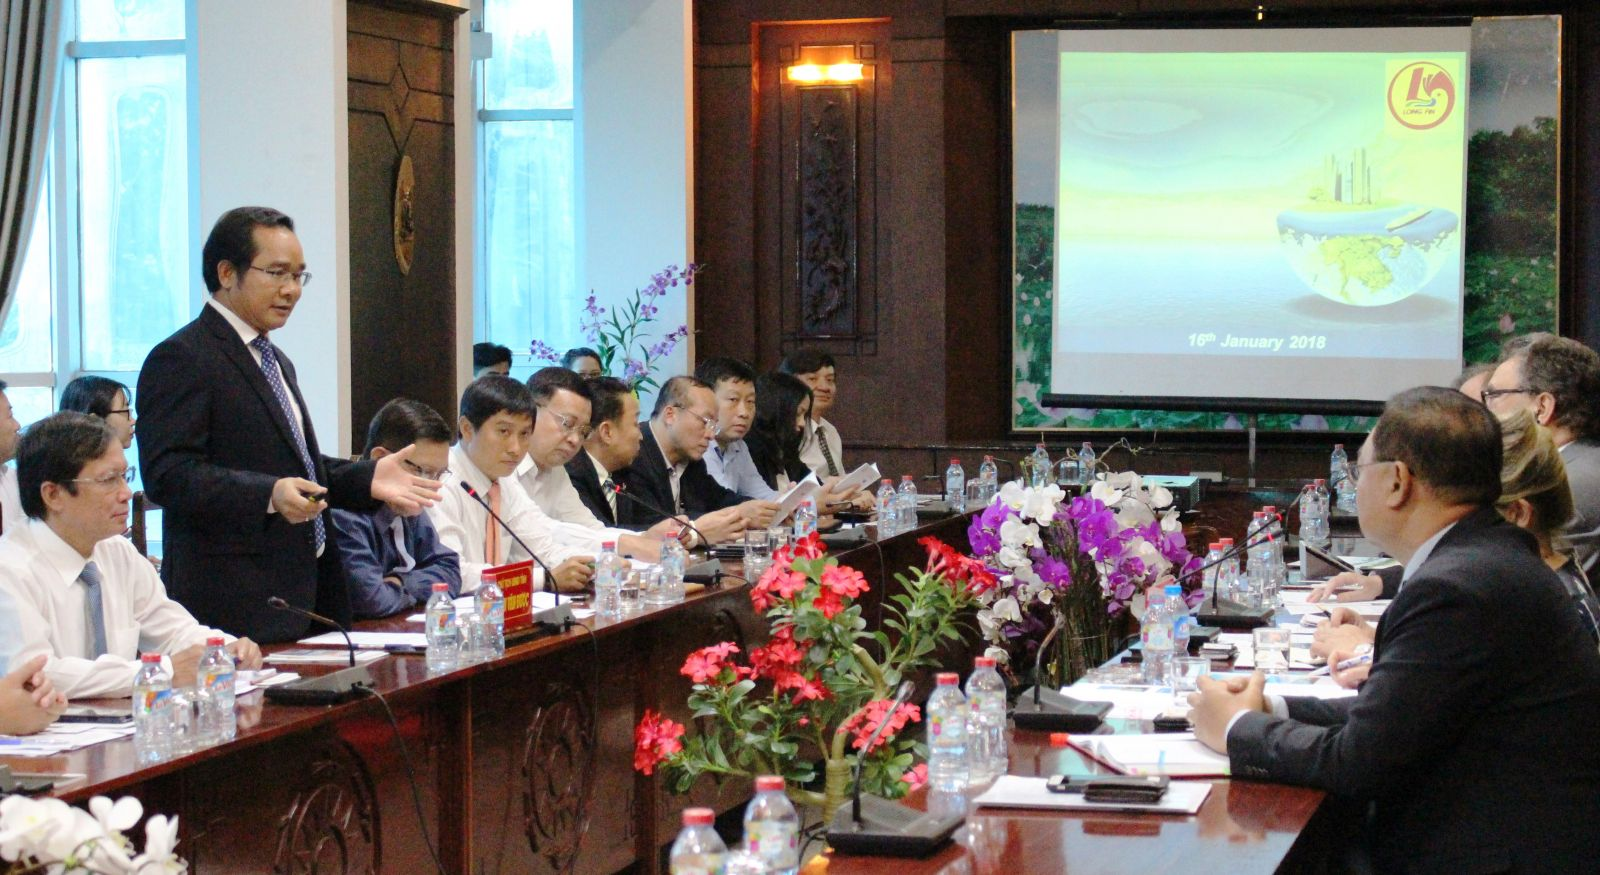 Deputy Chairman of People's Committee Nguyen Van Duoc introduced the province's potentials, advantages, development orientation and preferential policies to attract investment